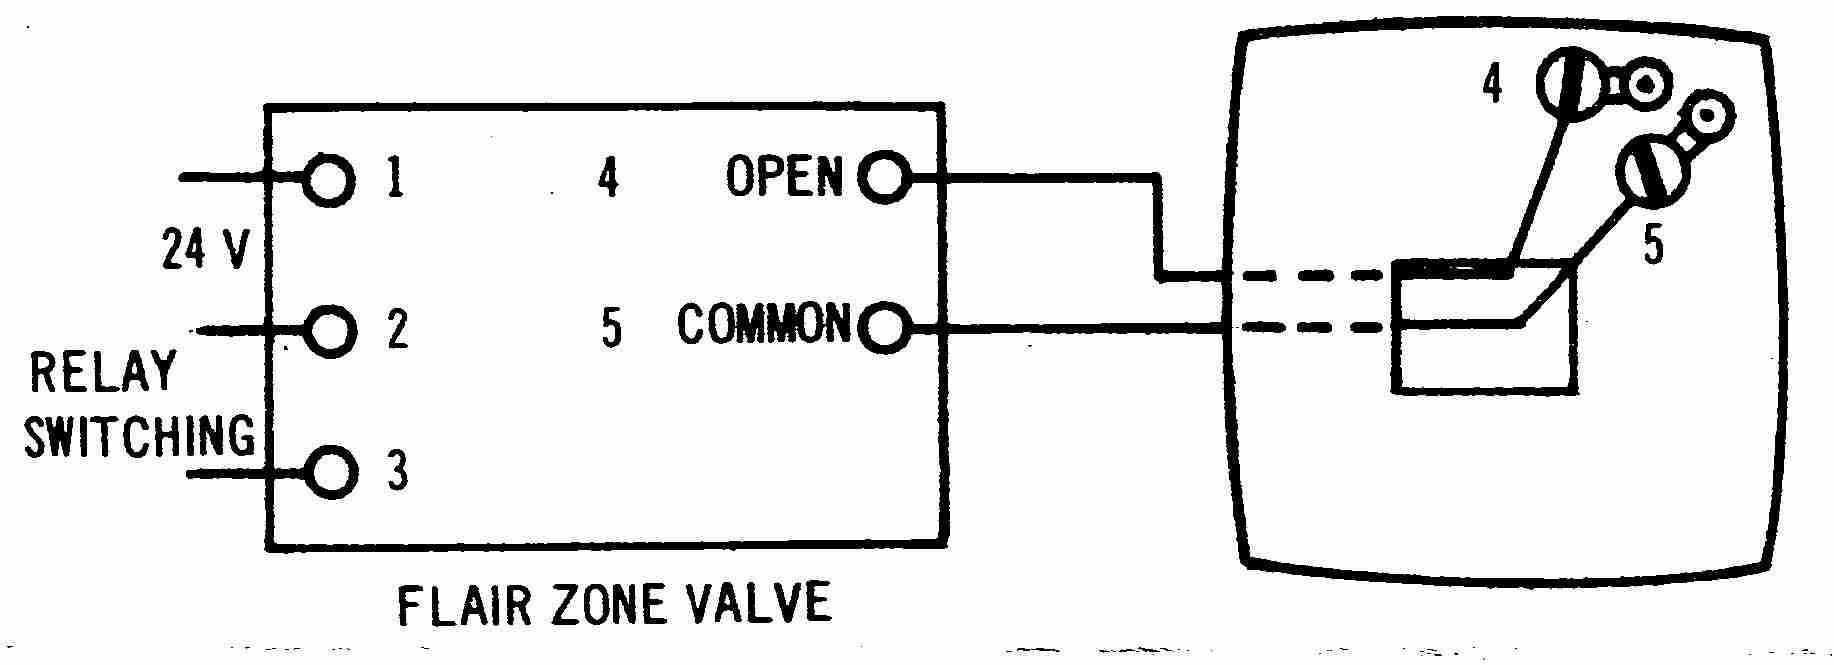 room thermostat wiring diagrams for hvac systems rh inspectapedia com argo avenger wiring diagram argo conquest wiring diagram